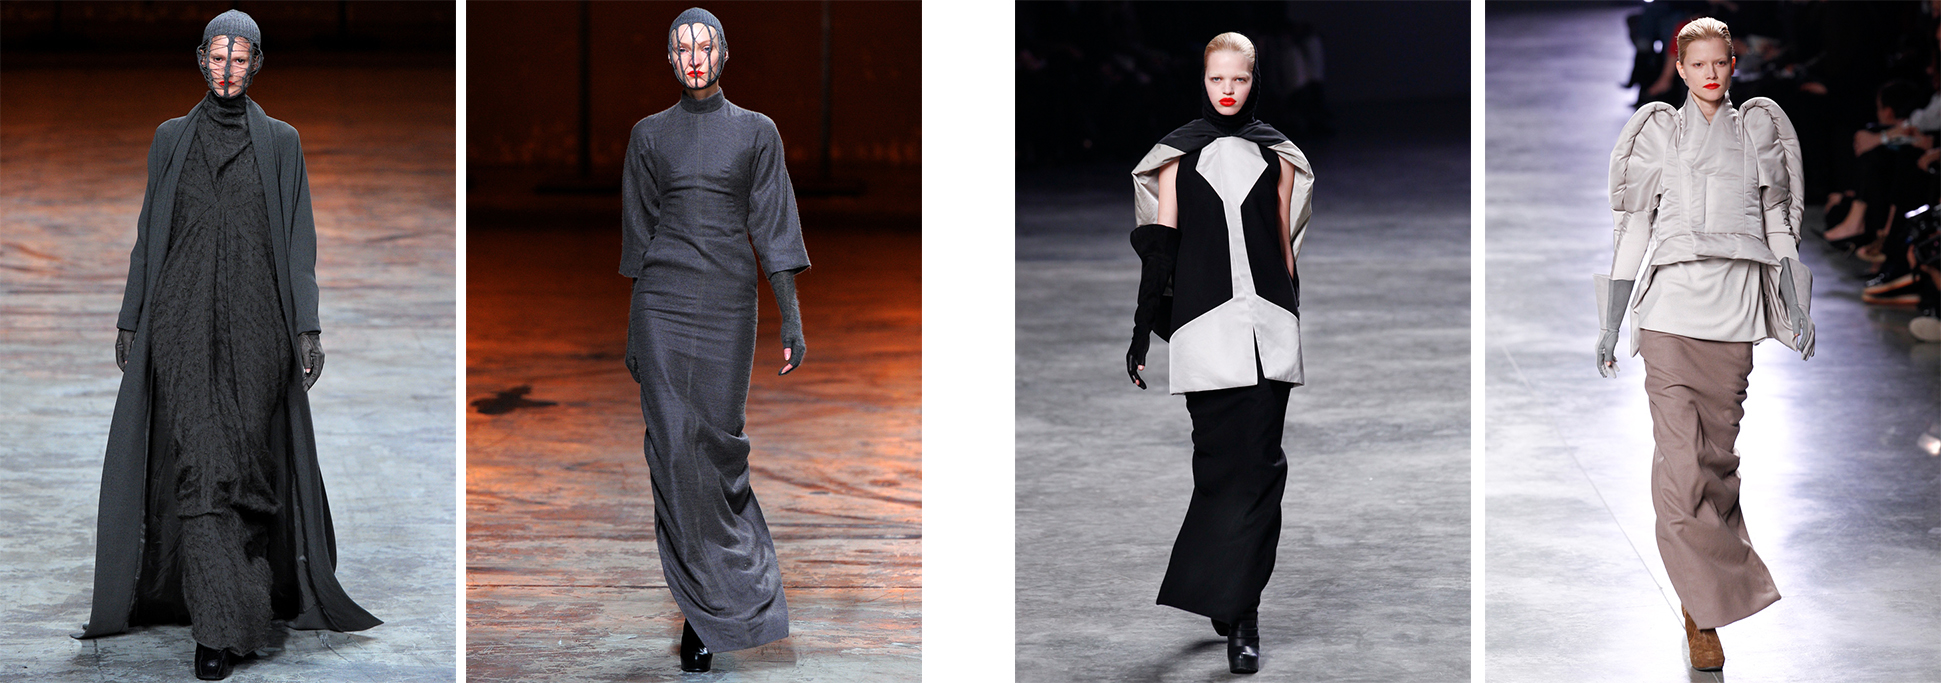 Rick Owens - Fall 2012 & Fall 2011 Ready-to-Wear